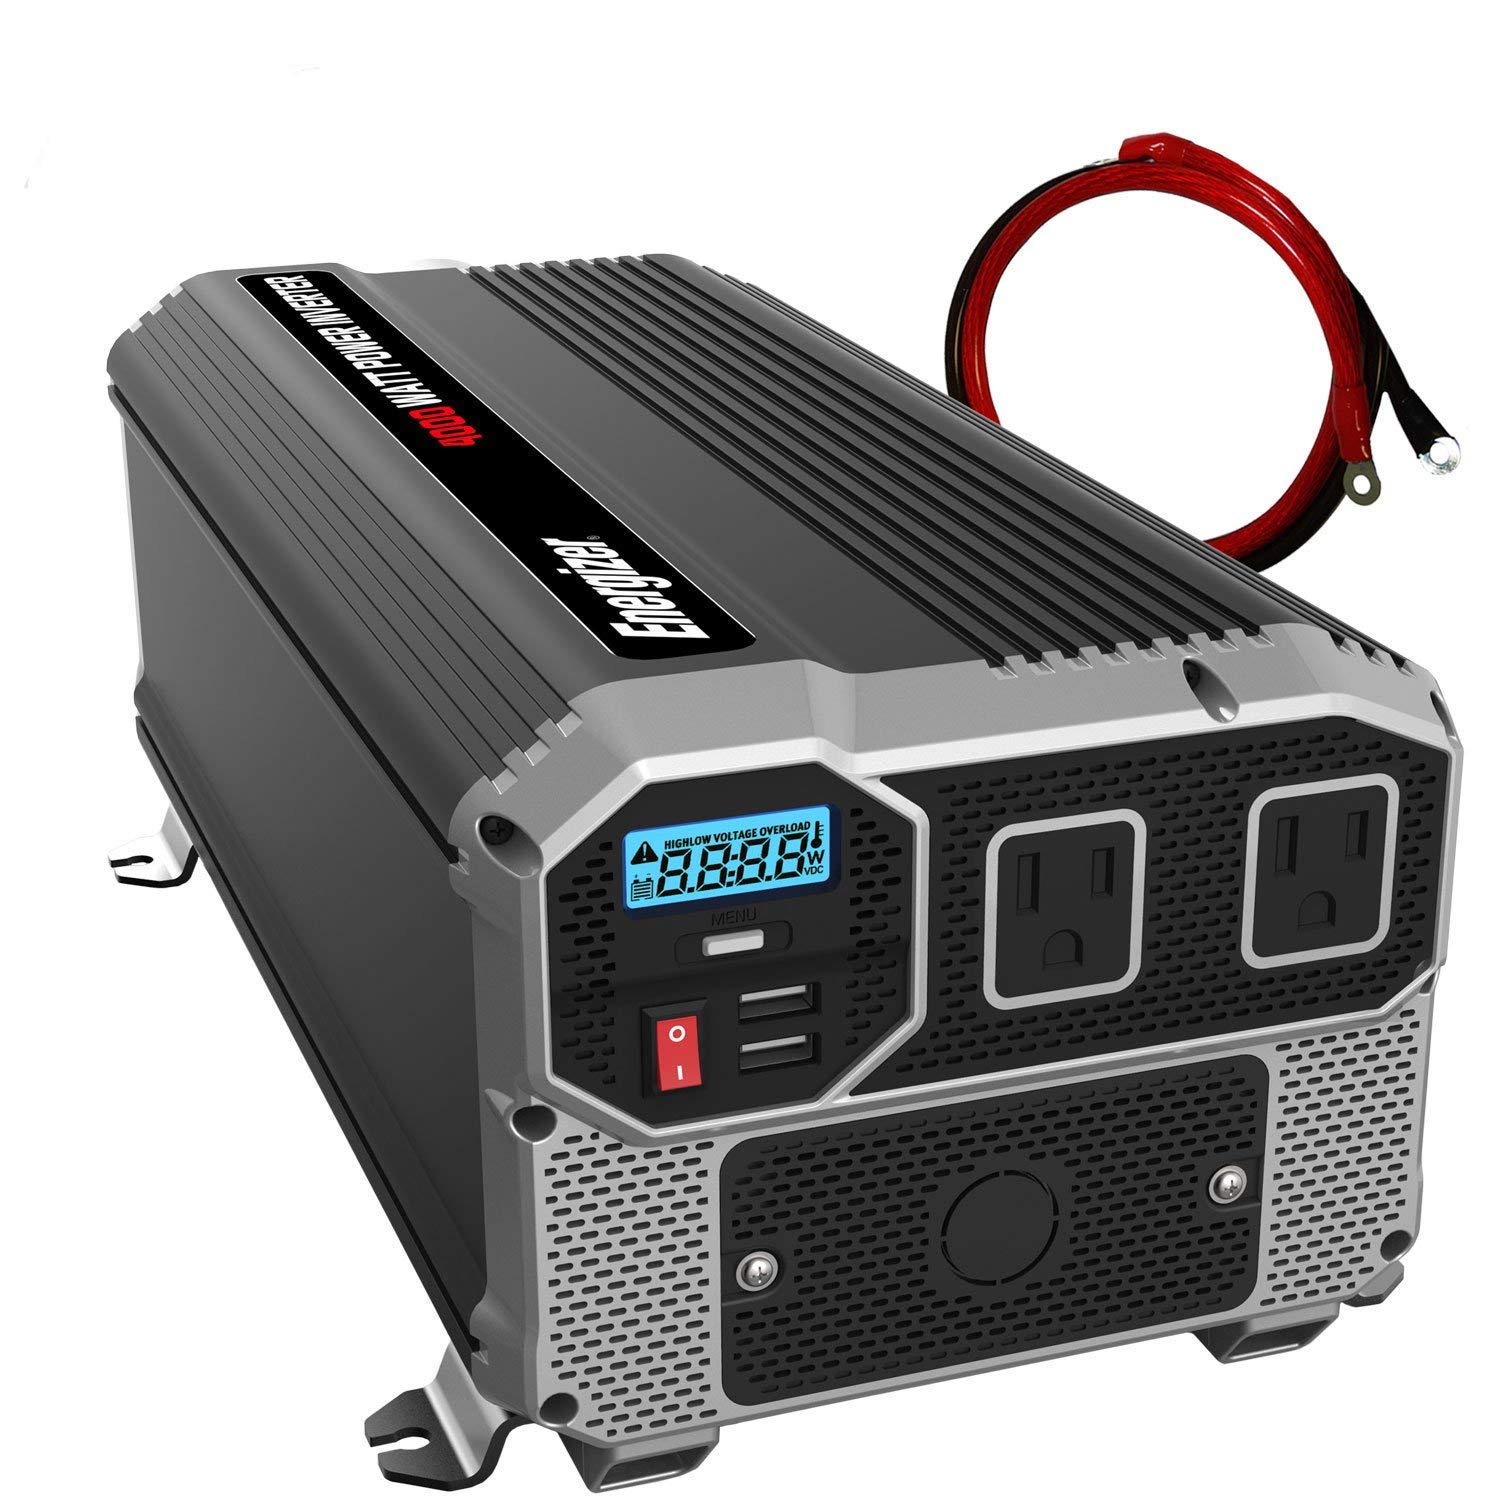 5 Best Power Inverter For Home 2021 [In-Depth Review] 1